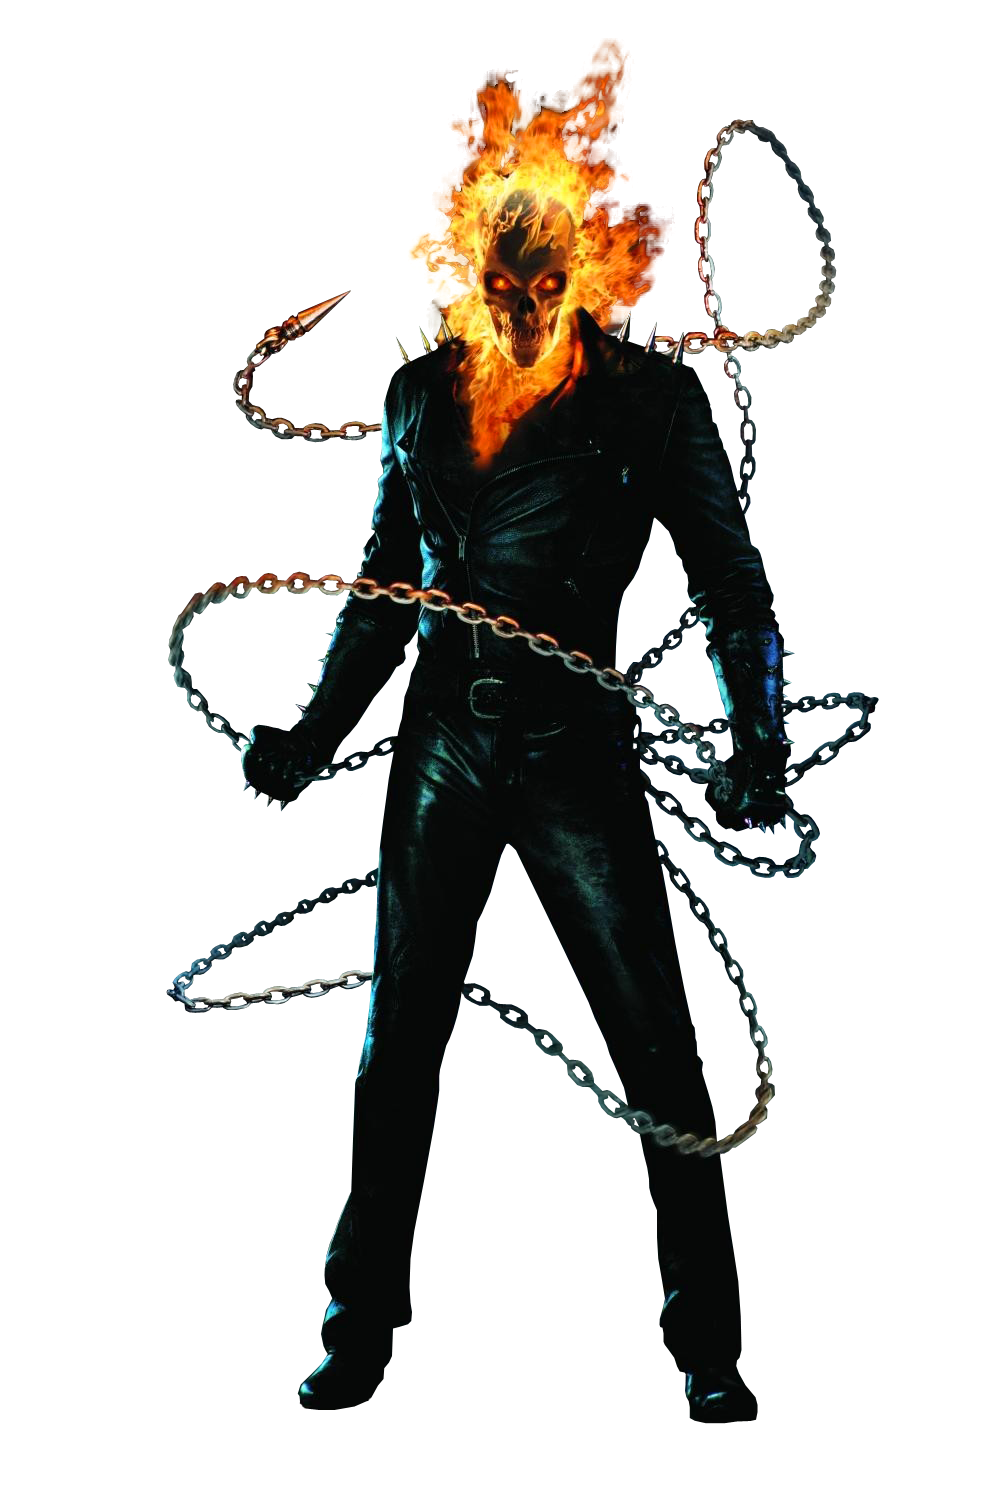 Ghost rider 2 in nackt hentia movies